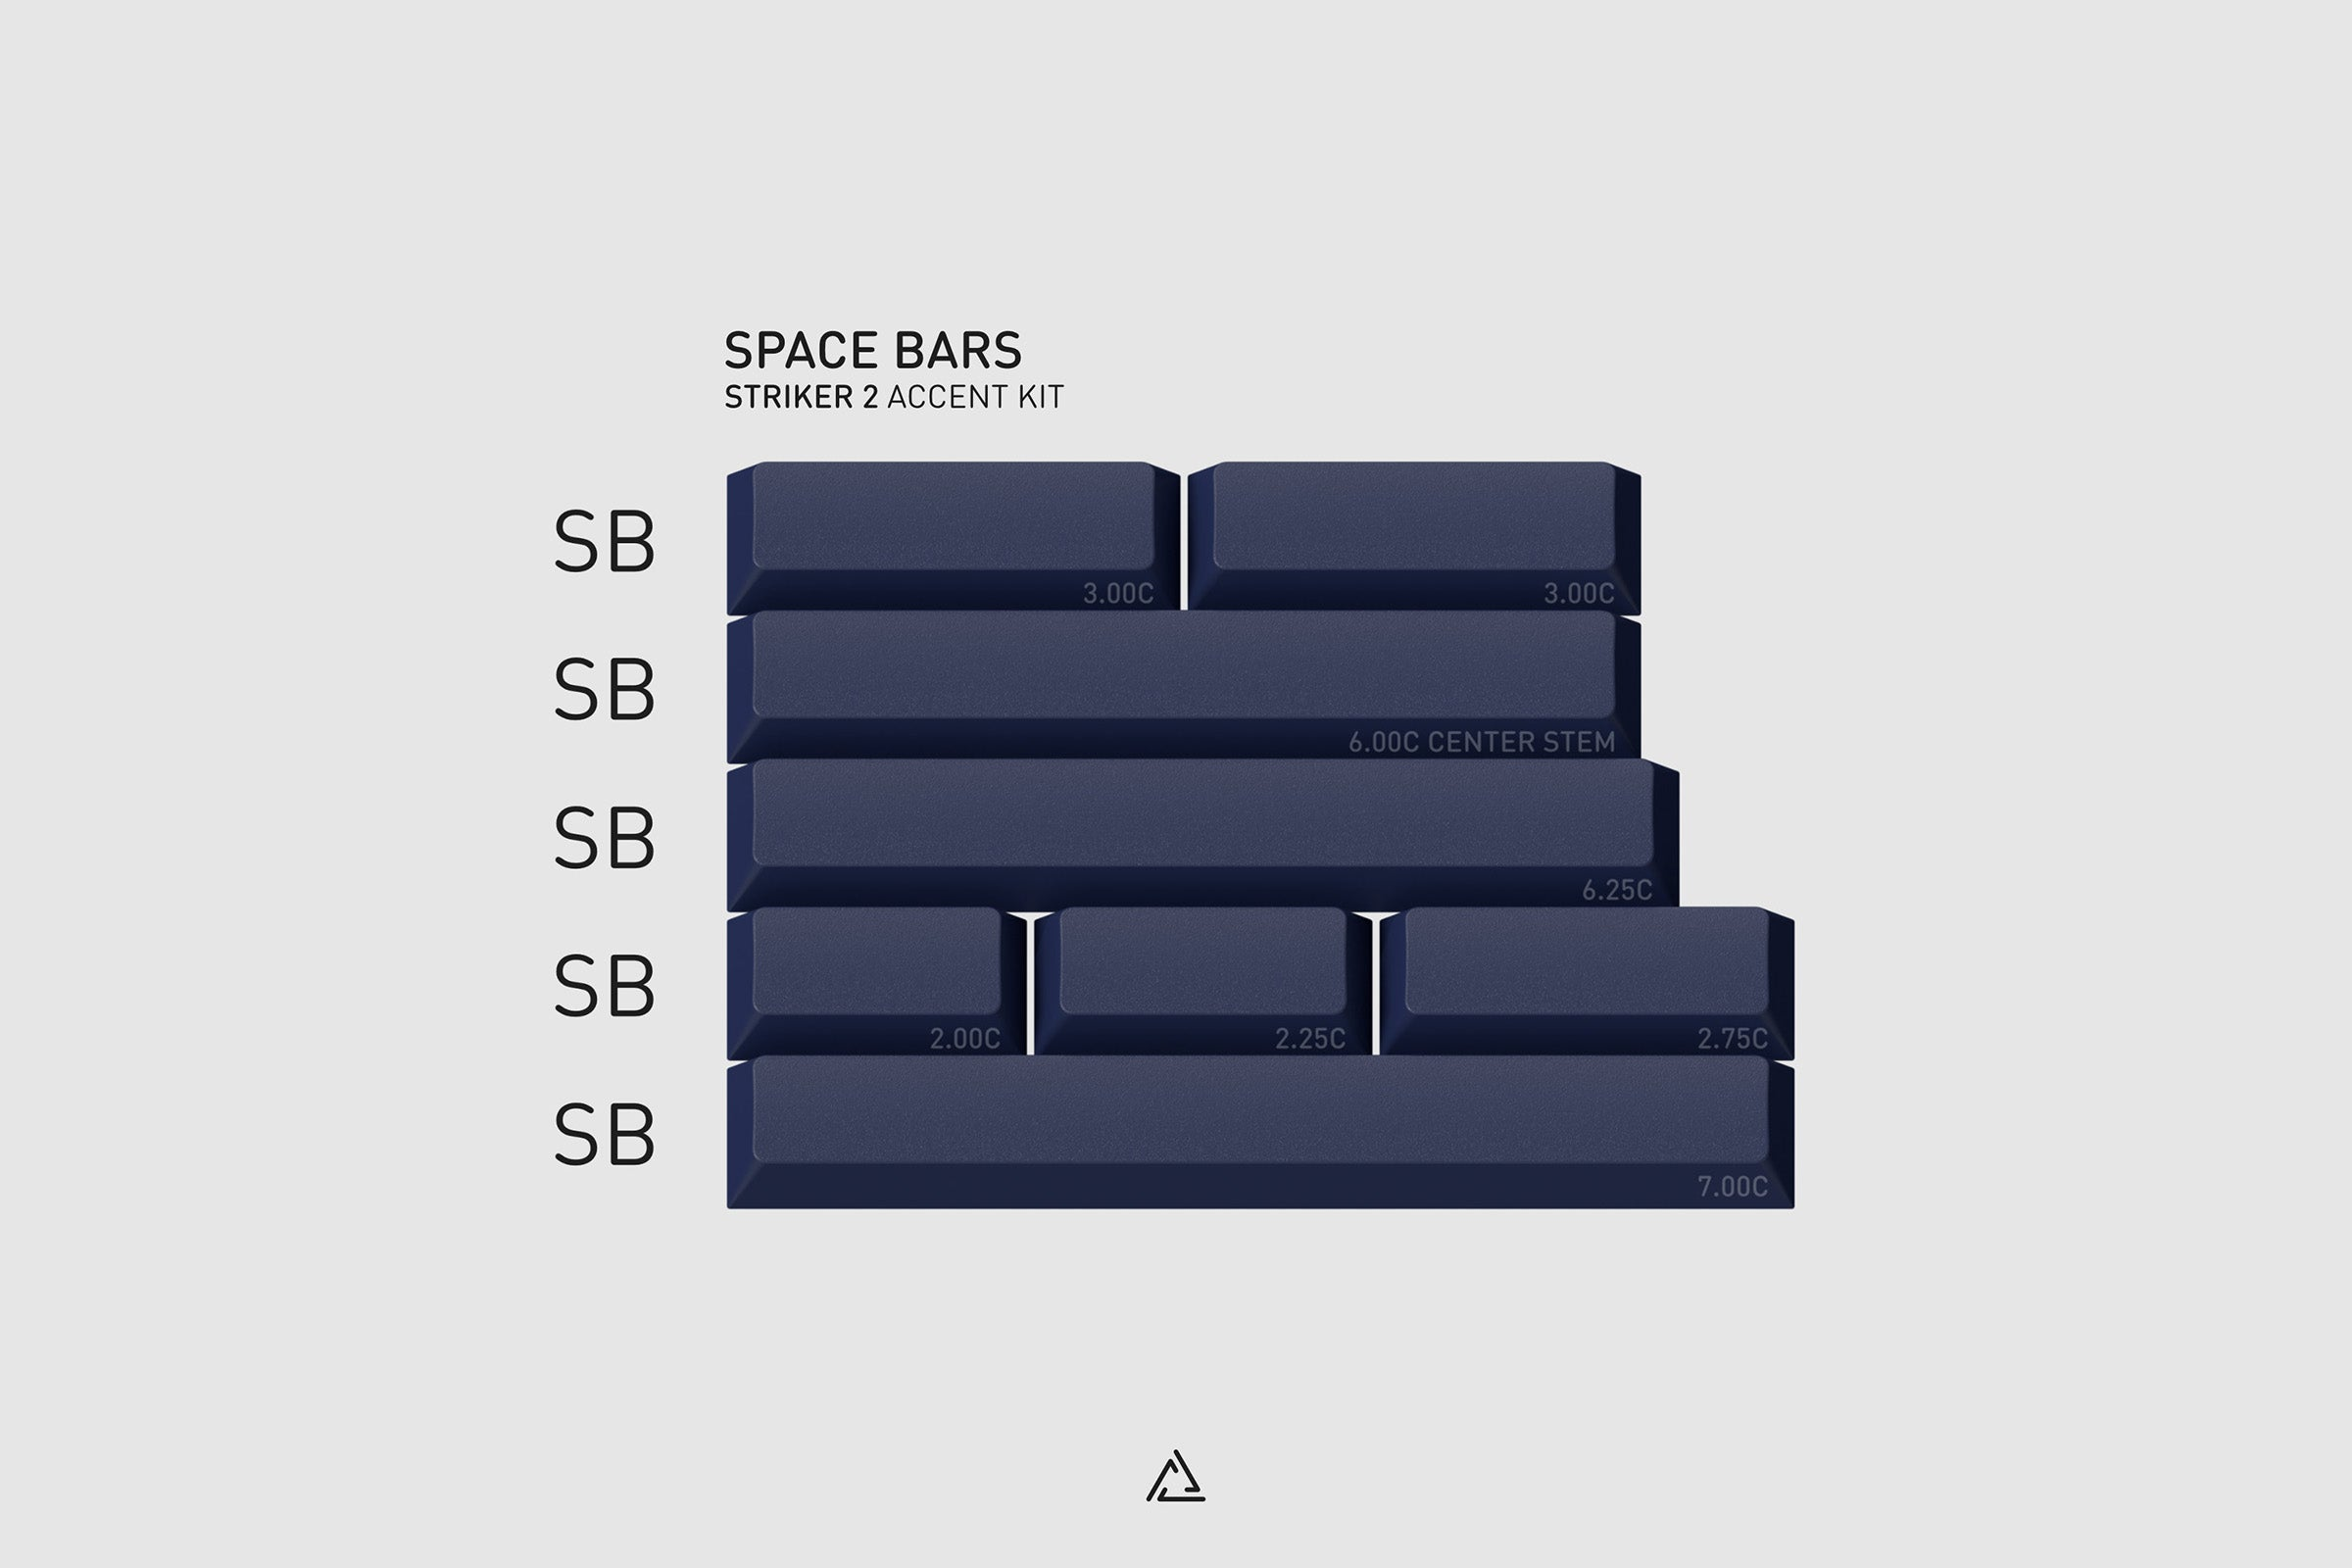 GMK Striker 2 Space Bars: The Space Bars kit includes accent space keys from 2.00C to 7.00C for both standard, and split keyboards.